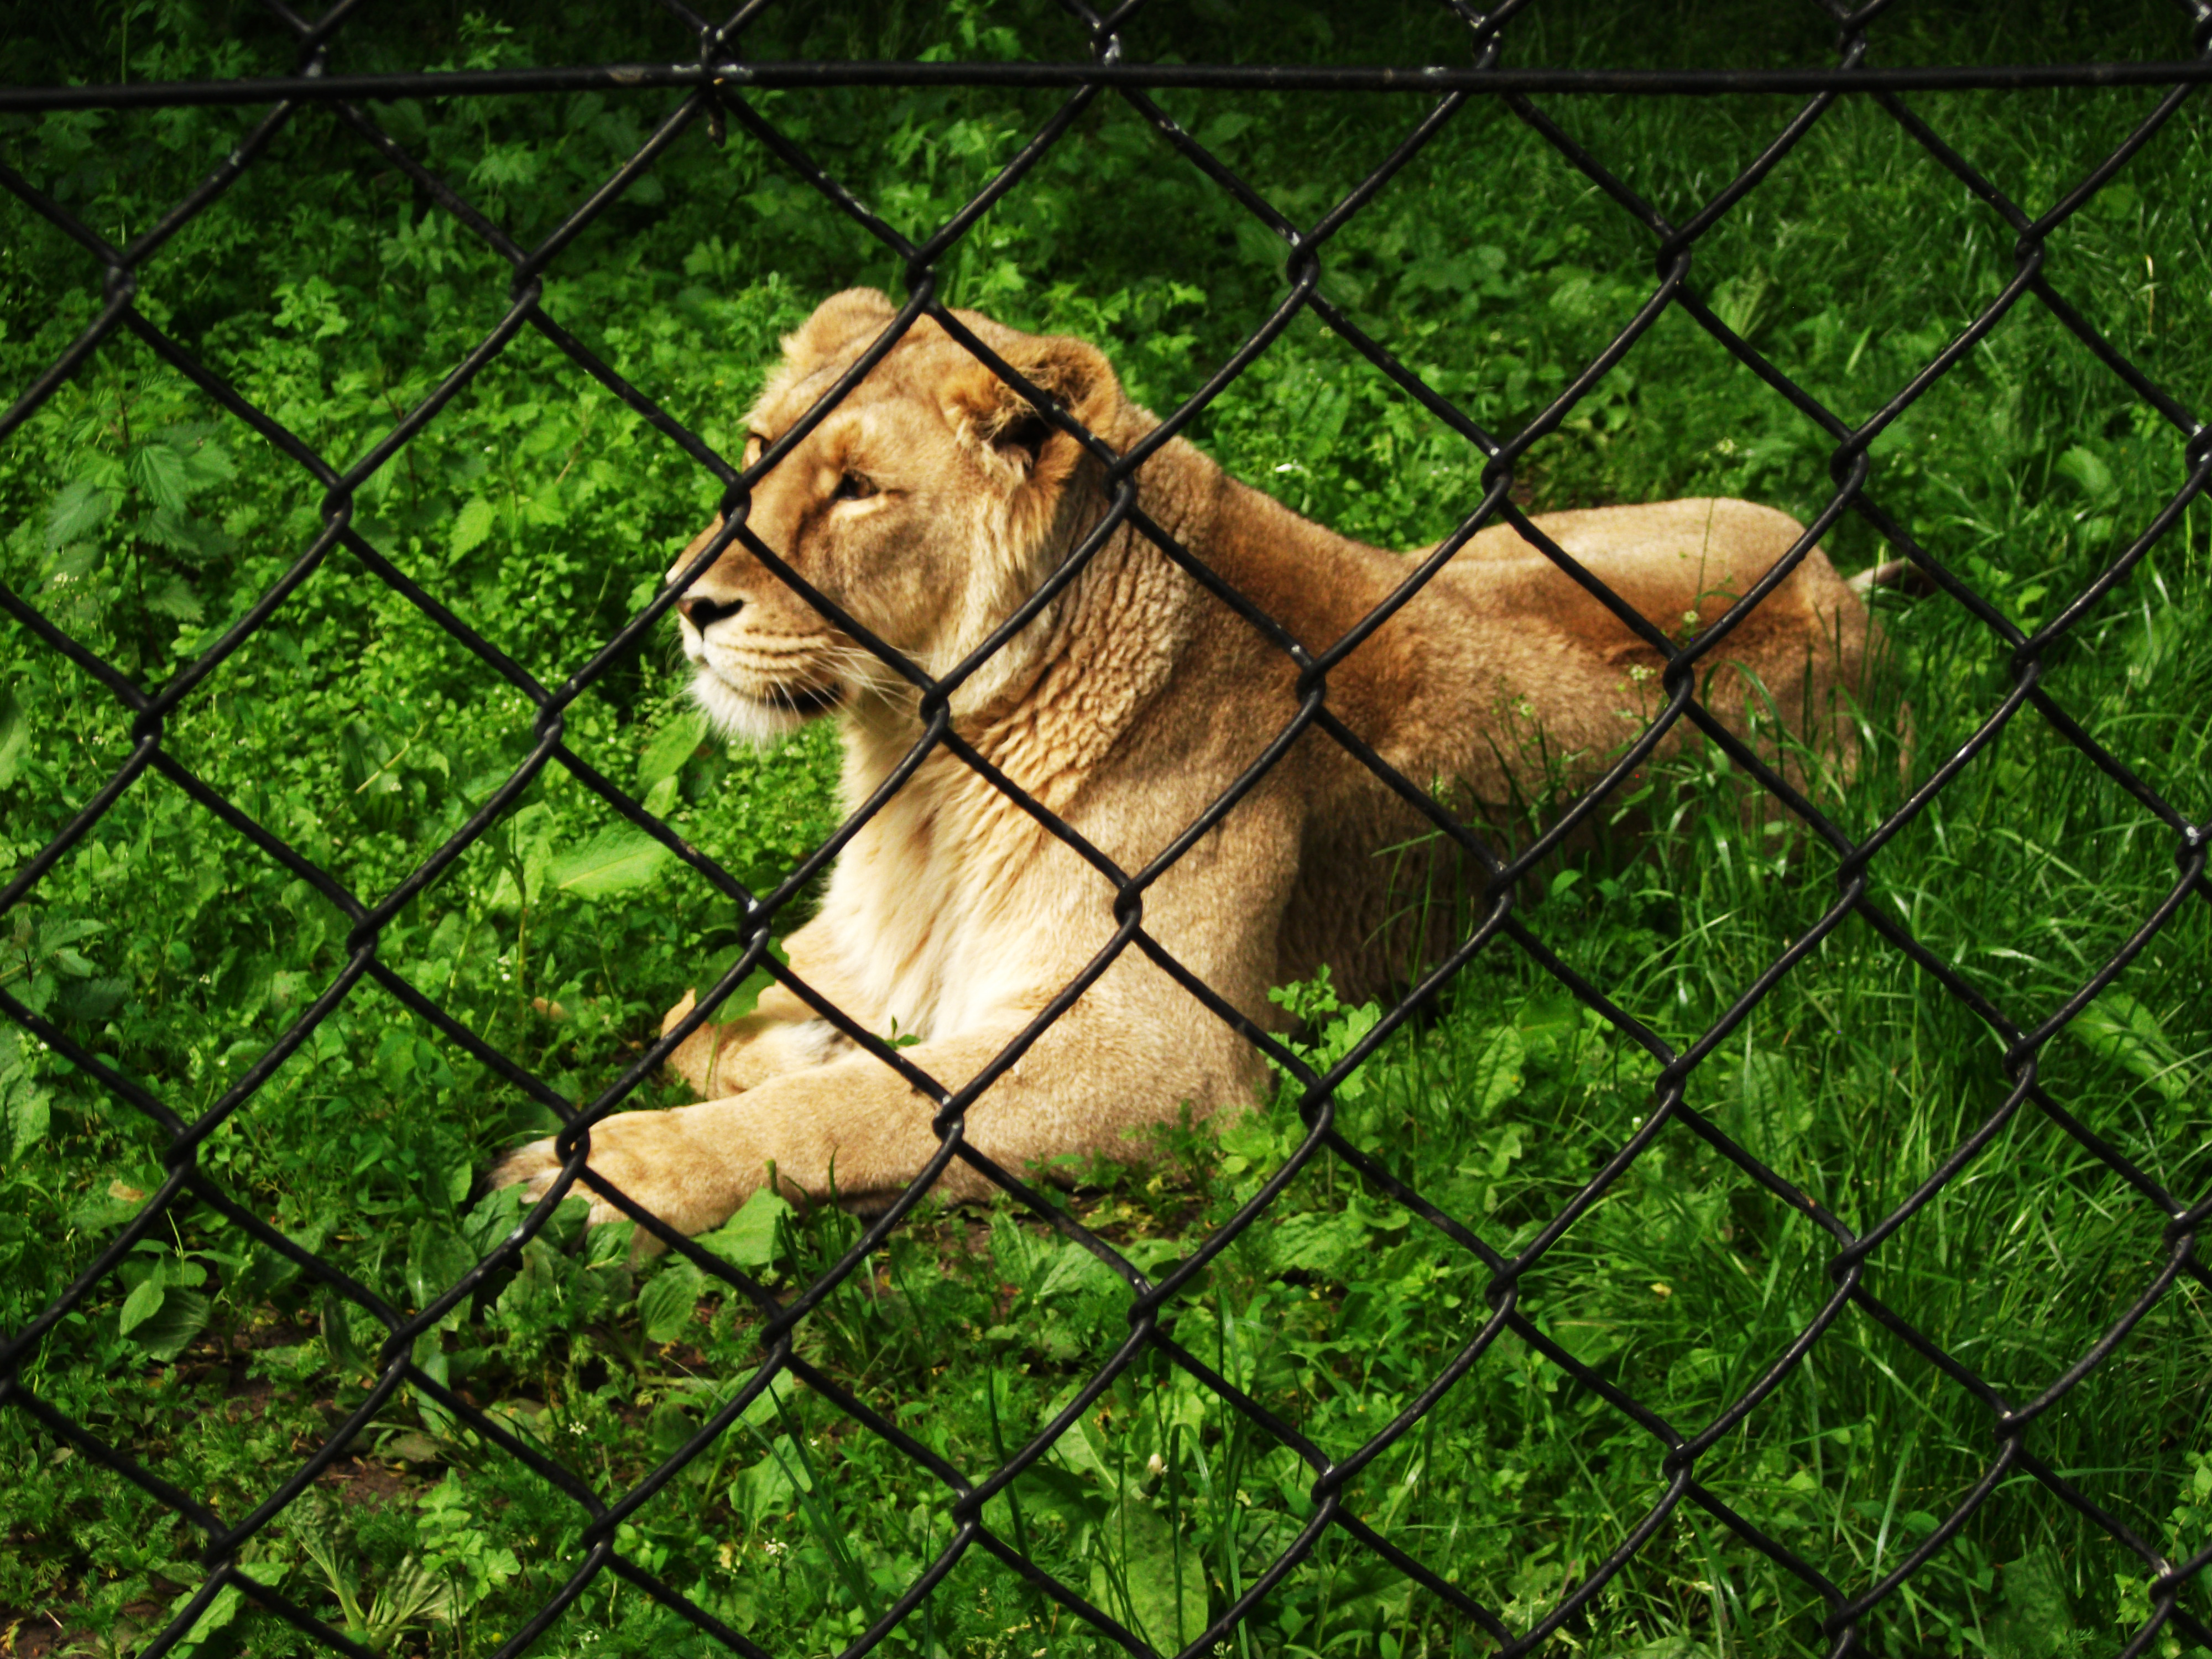 Lioness at the zoo